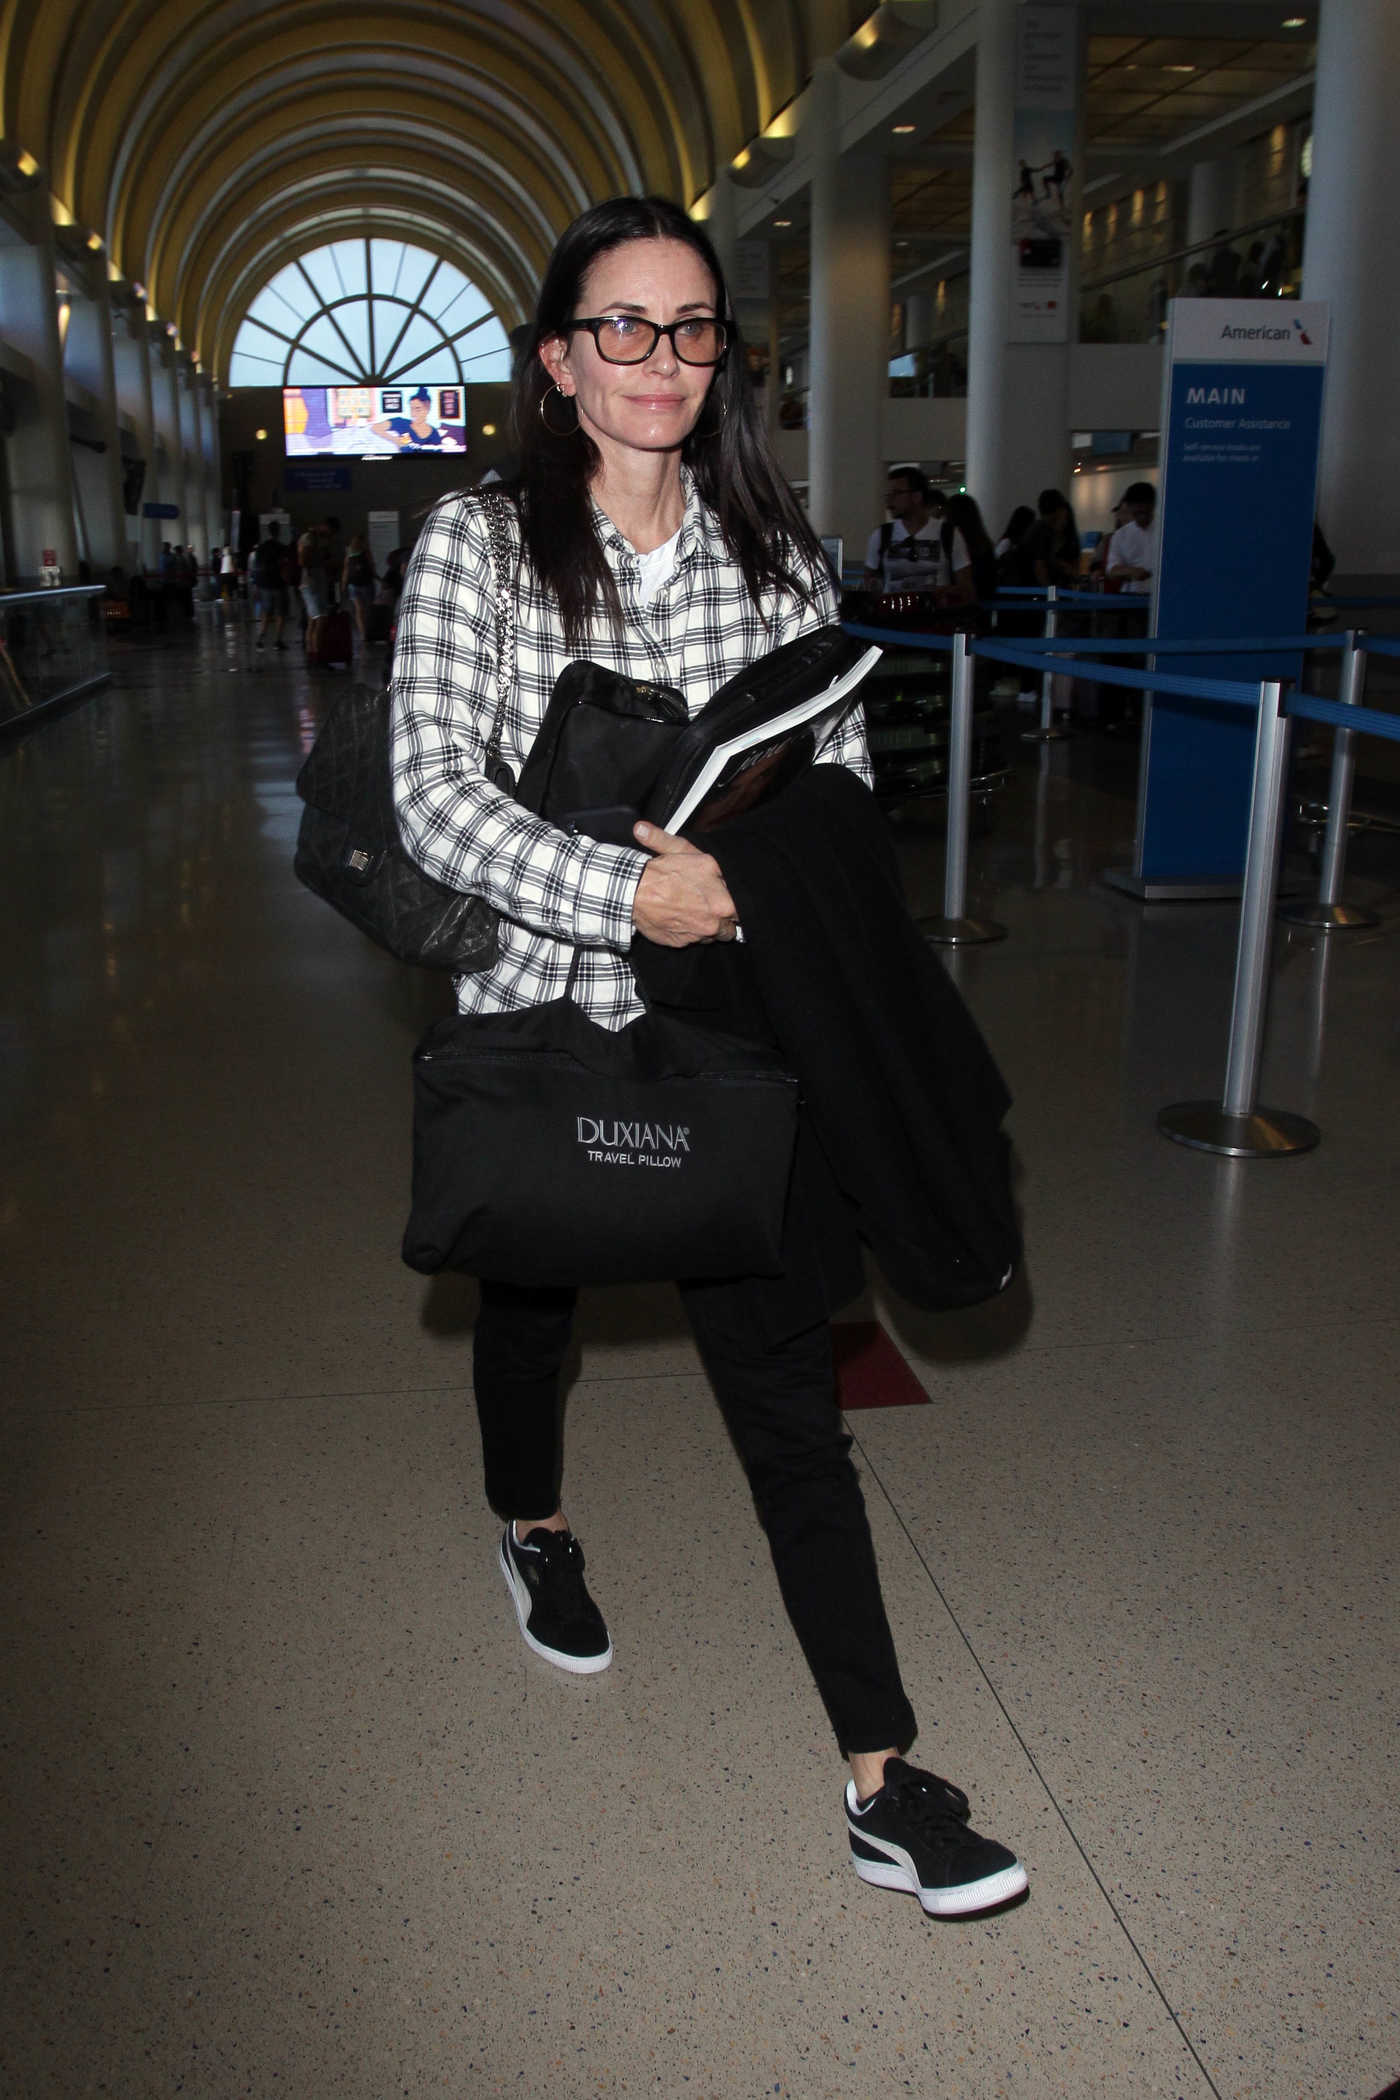 Courteney Cox in a Black Puma Sneakers Arrives at LAX Airport in Los Angeles 10/20/2018